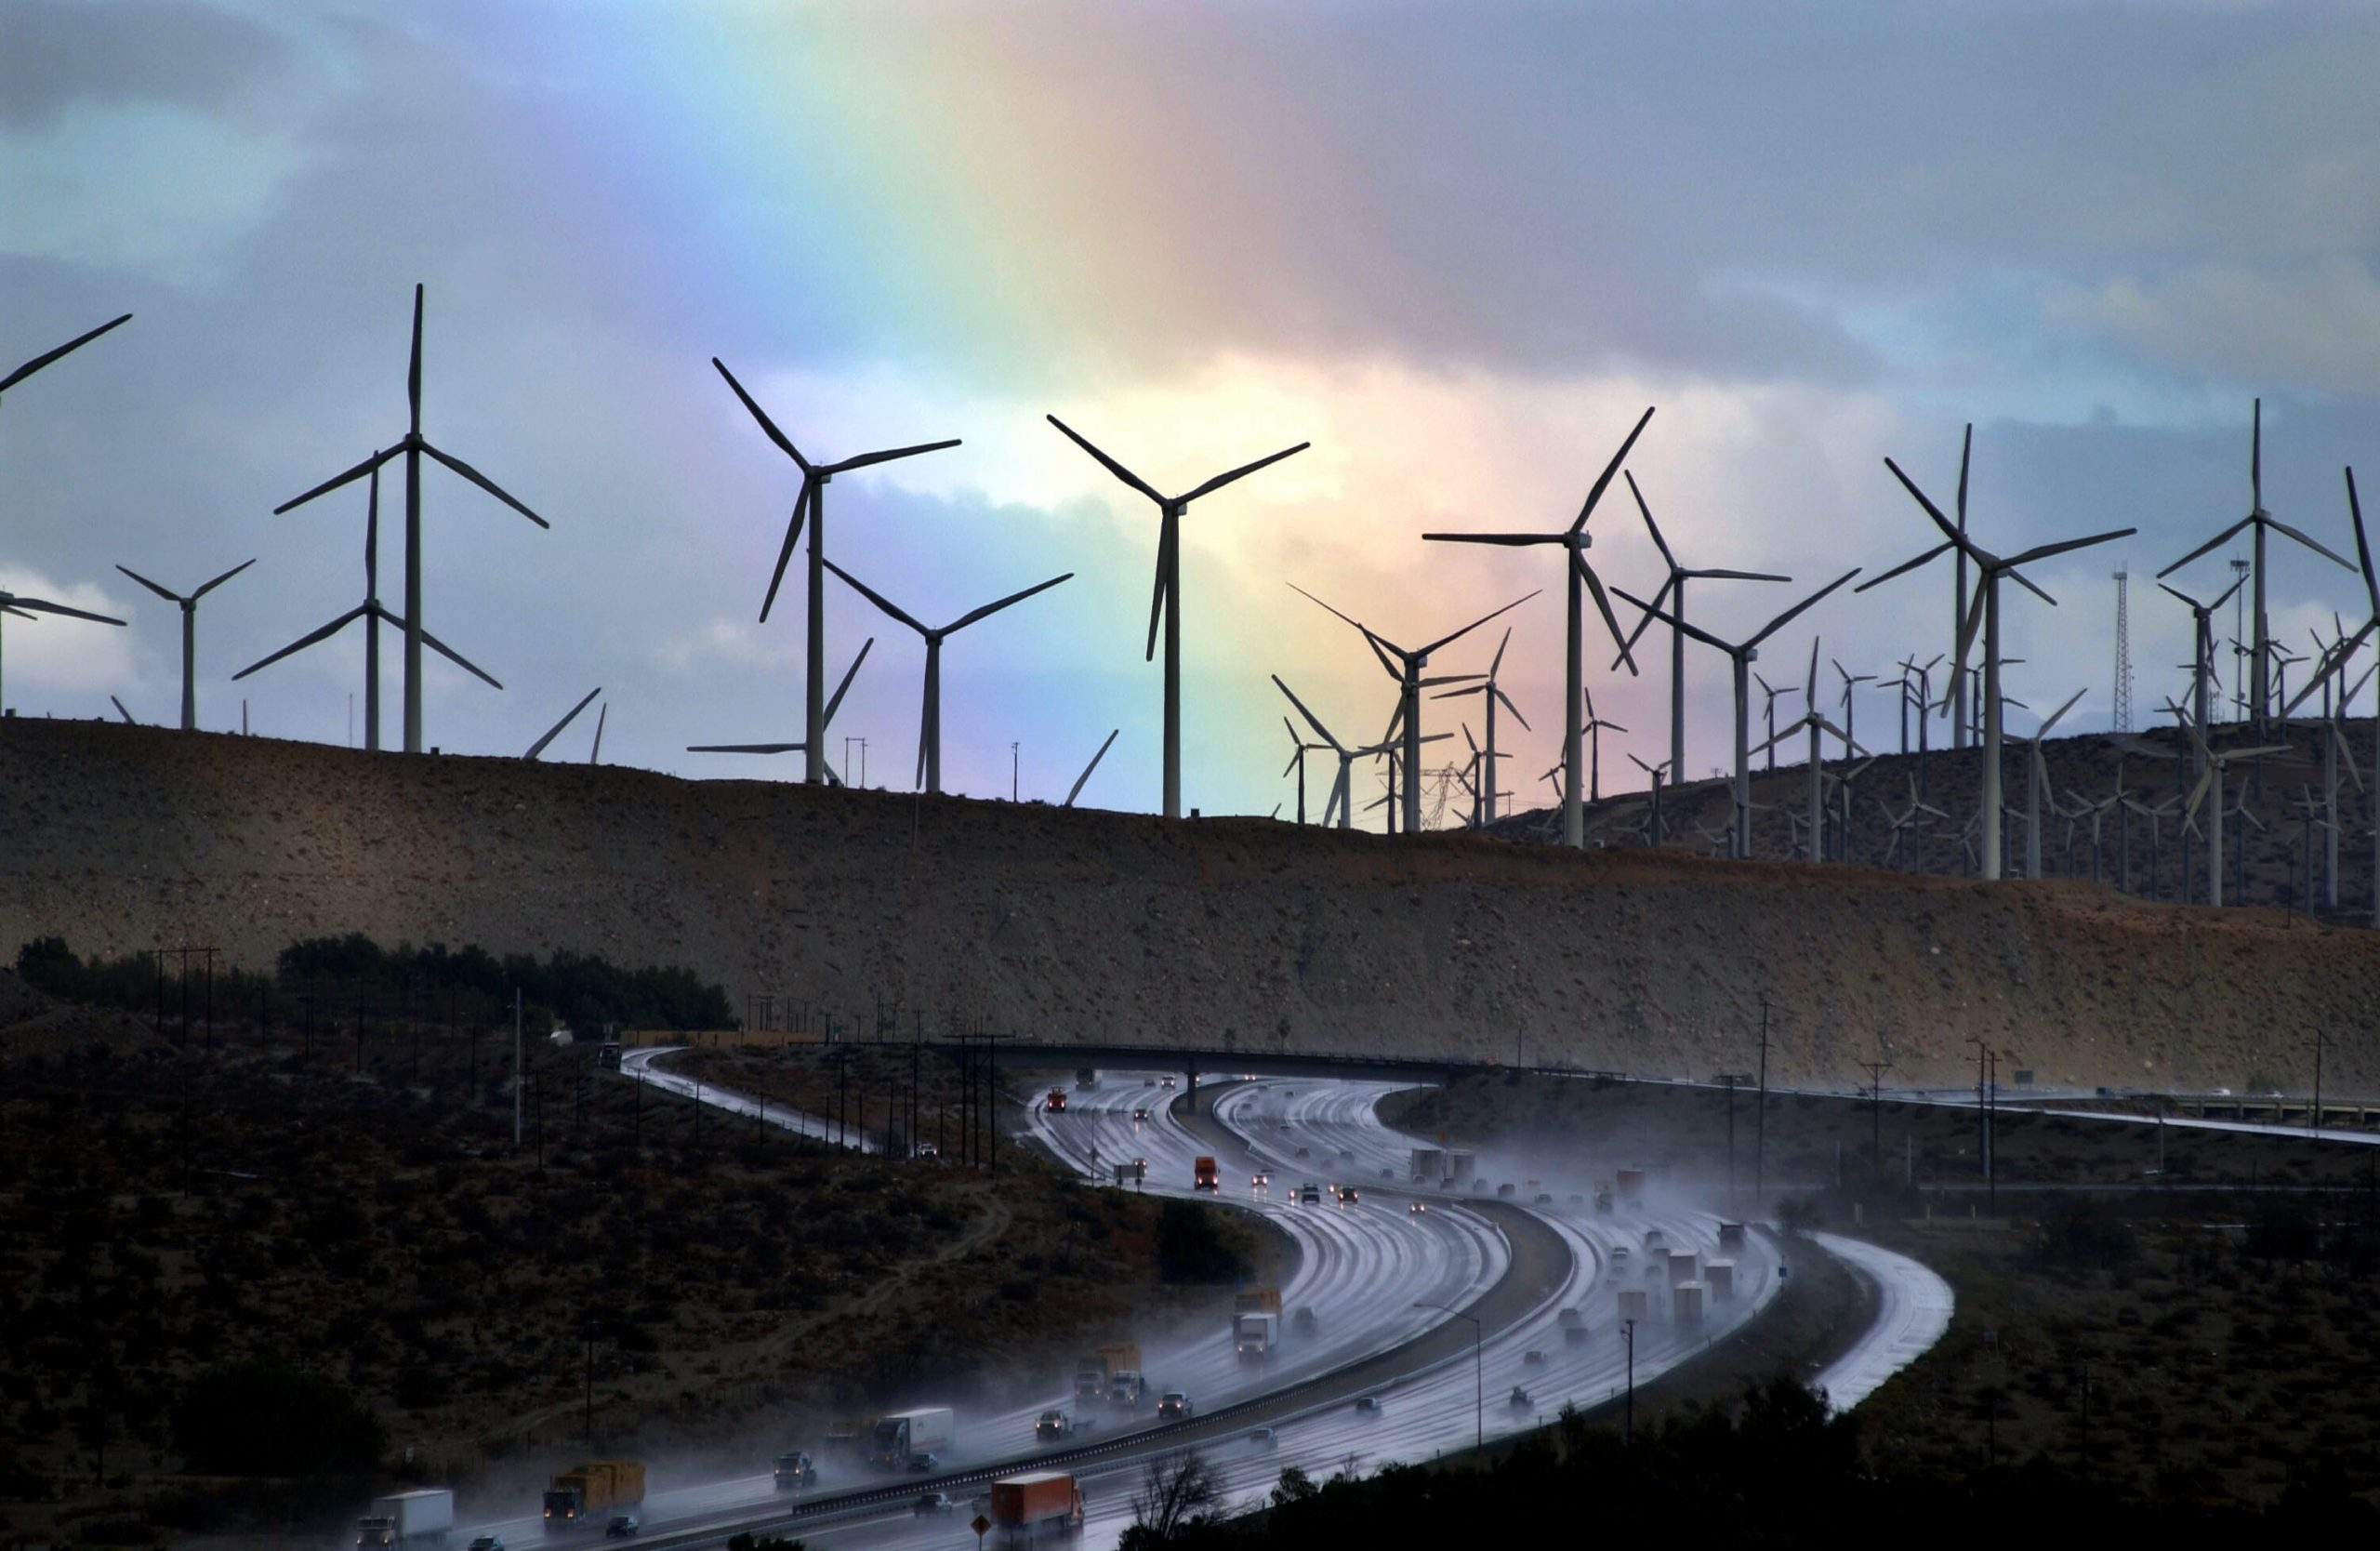 PALM SPRINGS, CA - DECEMBER 17: A rainbow forms behind giant windmills near rain-soaked Interstate 10 as an El Nino-influenced storm passes over the state on December 17, 2002 near Palm Springs, California. Because of consistantly high winds, thousands of giant windmills have sprouted in the area to create wind-powered electricity. (Photo by David McNew/Getty Images)